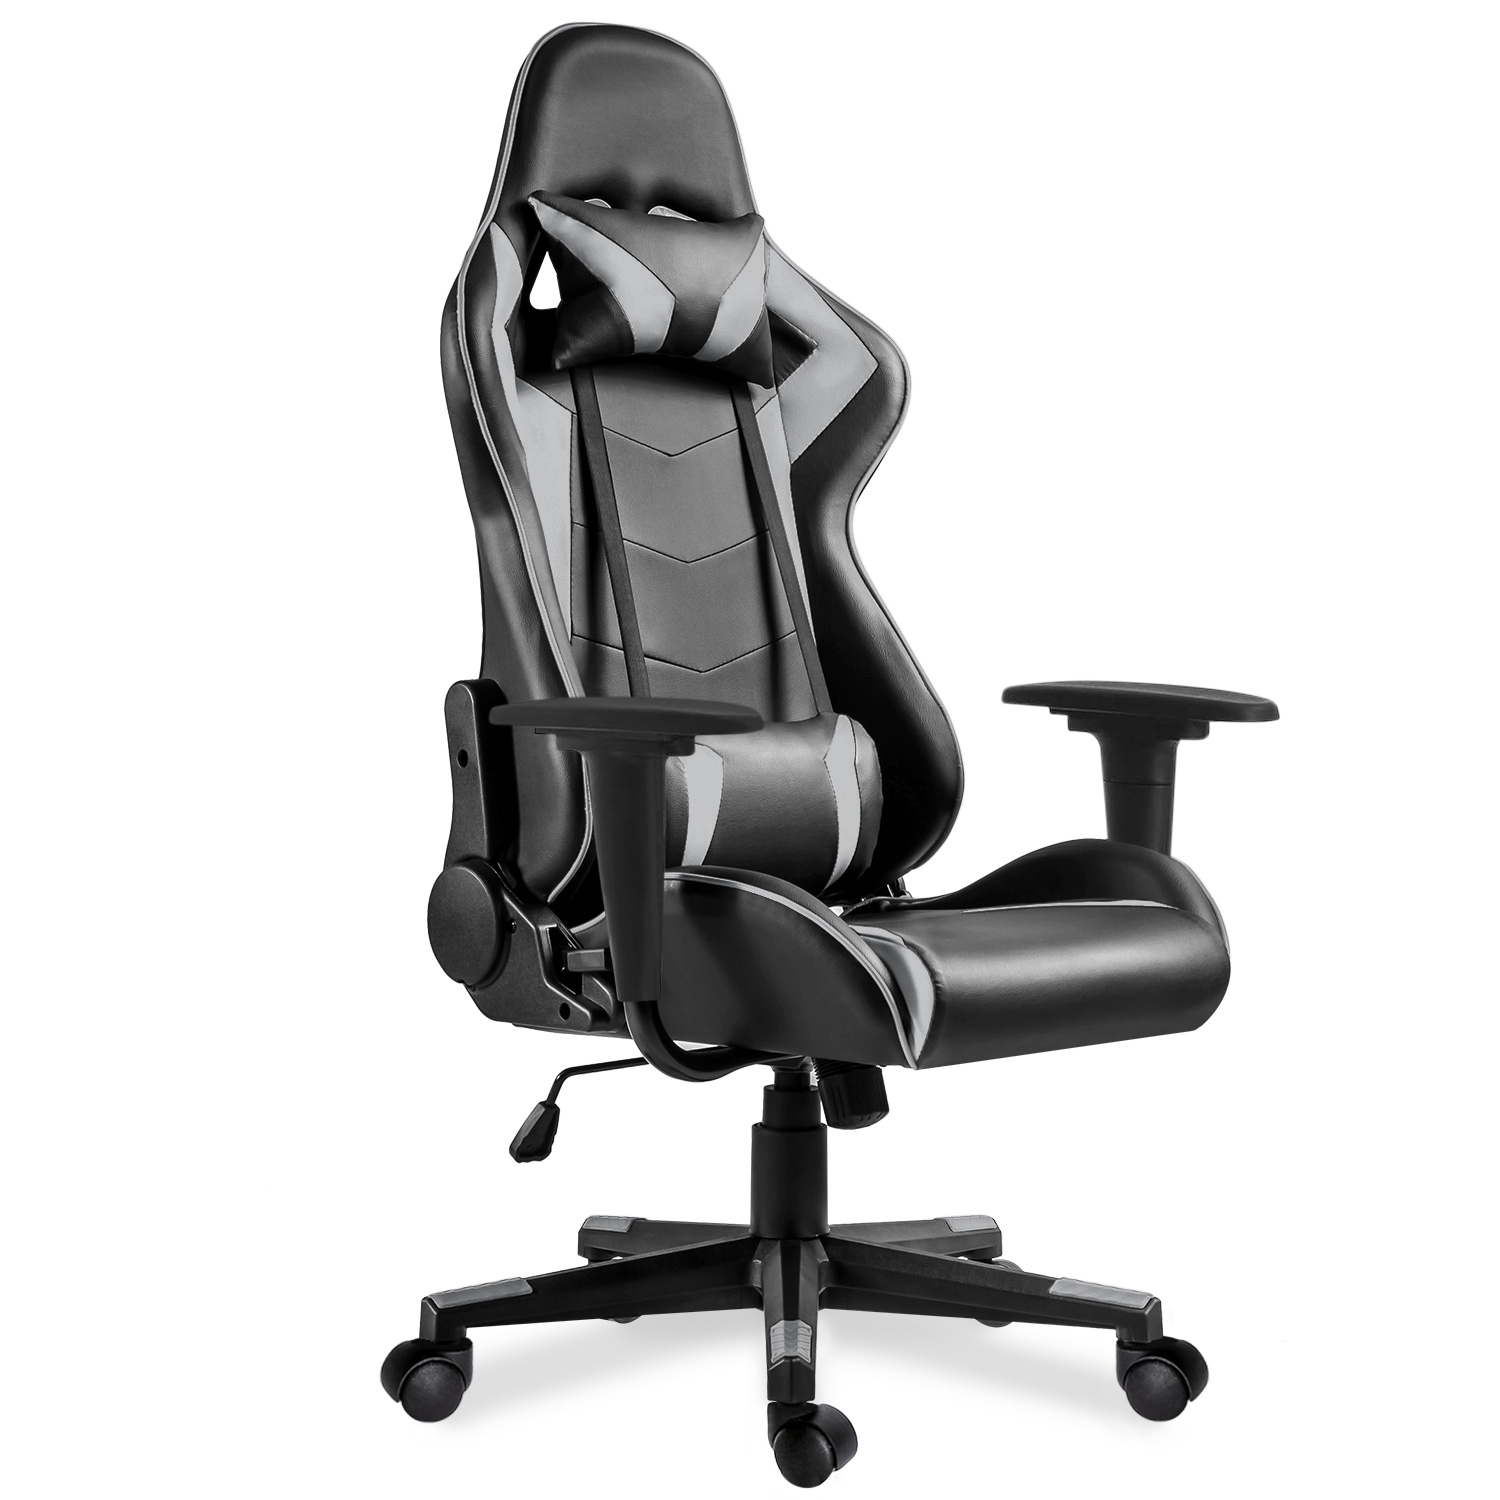 High-end Quality Office Boss Chair Ergonomic Computer Gaming Chair Internet Cafe Seat Household Reclining Chair PU Leather Chair